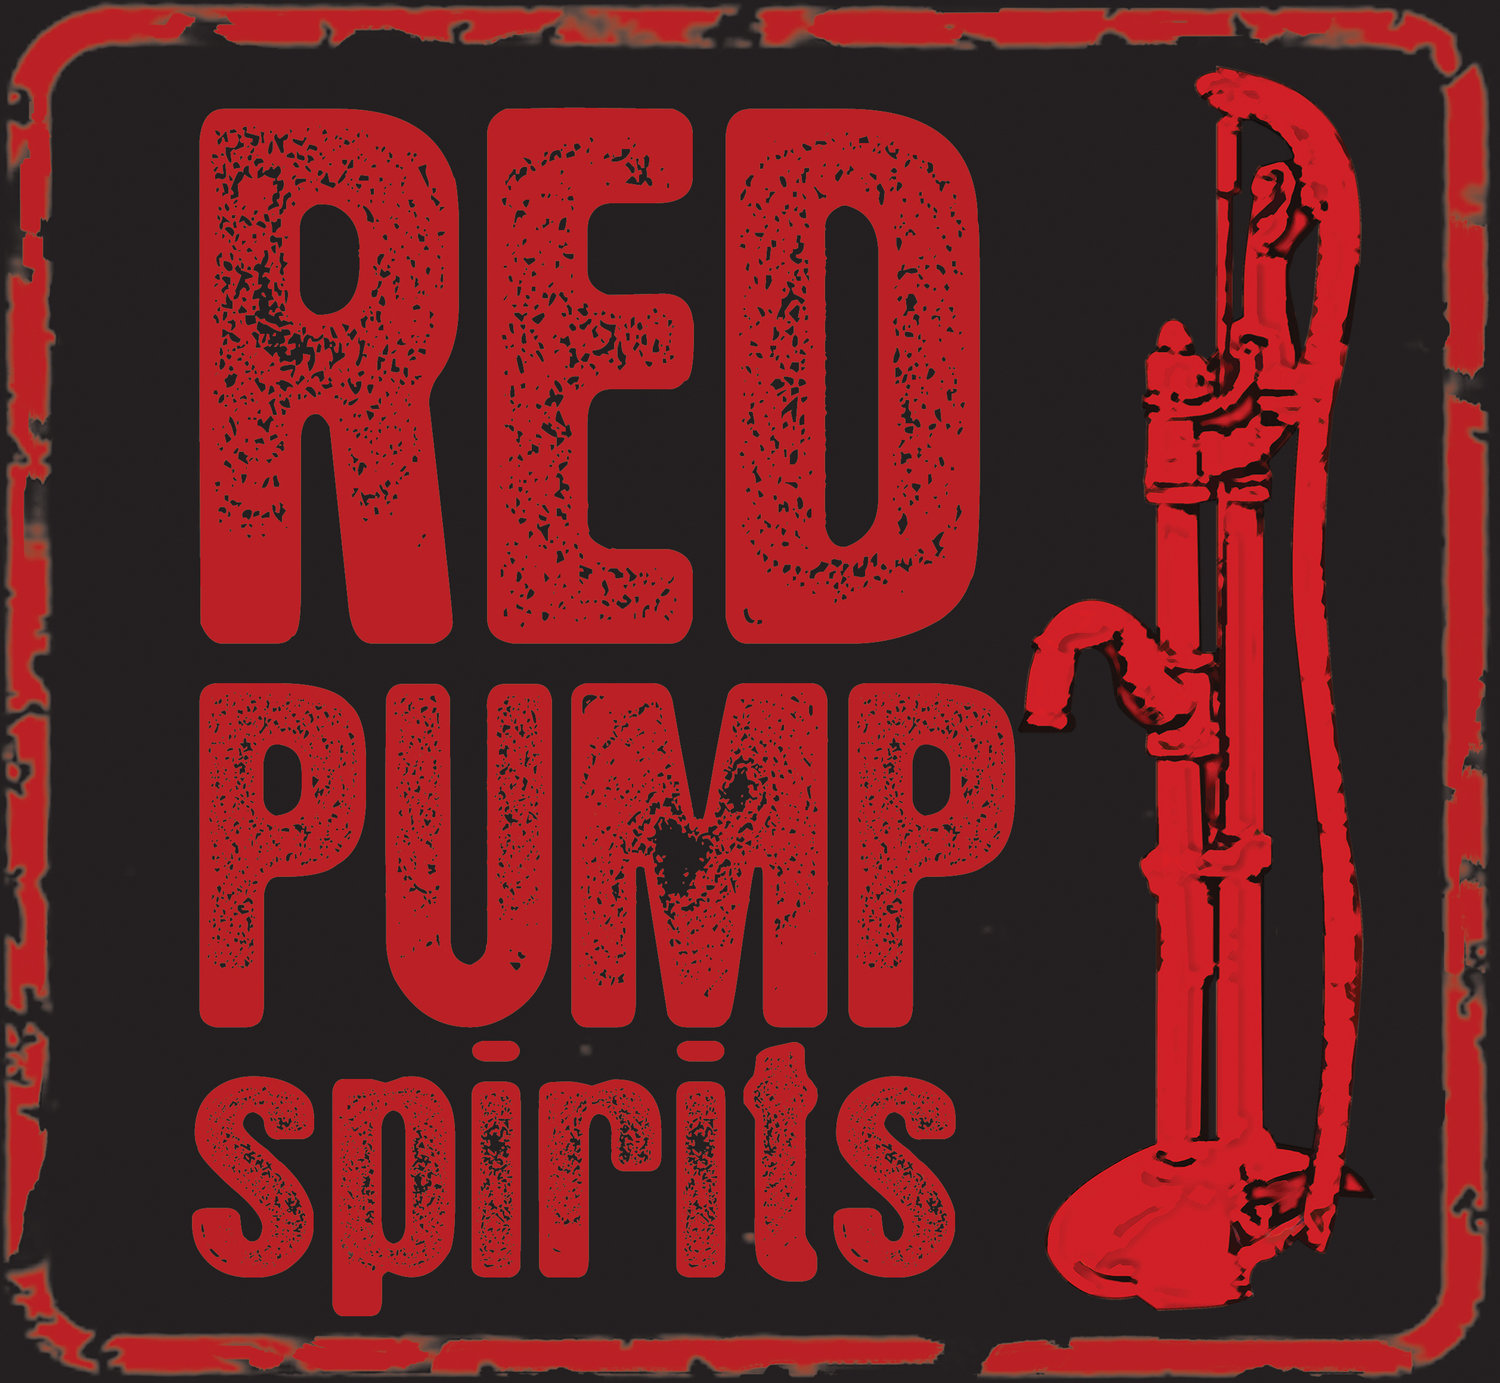 Red Pump Spirits